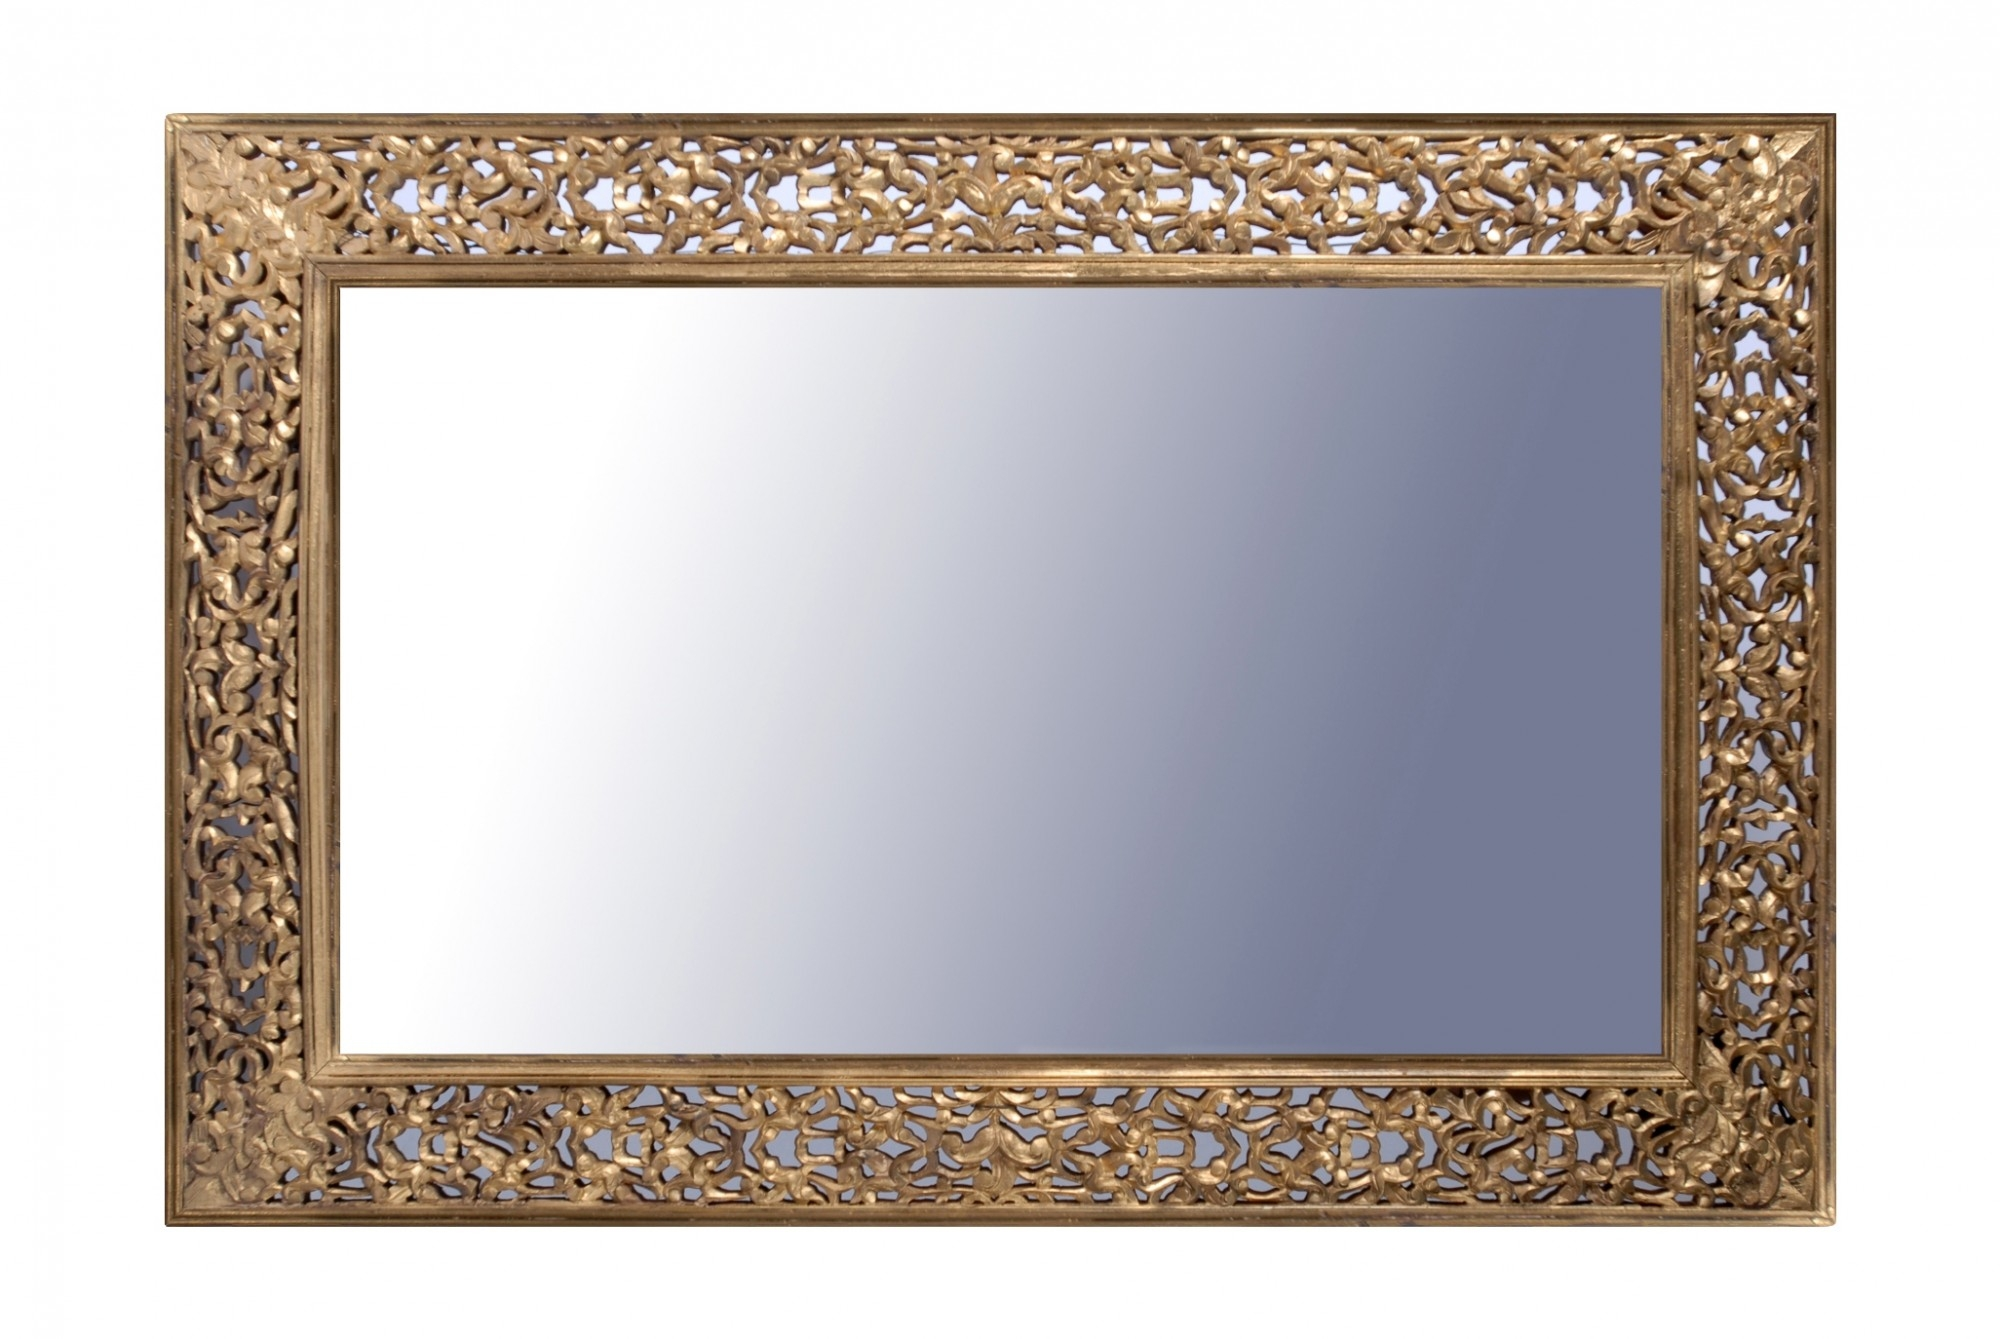 Home Decor Fascinating Antique Mirror Images Design Inspirations For Old Fashioned Mirrors (Image 7 of 15)